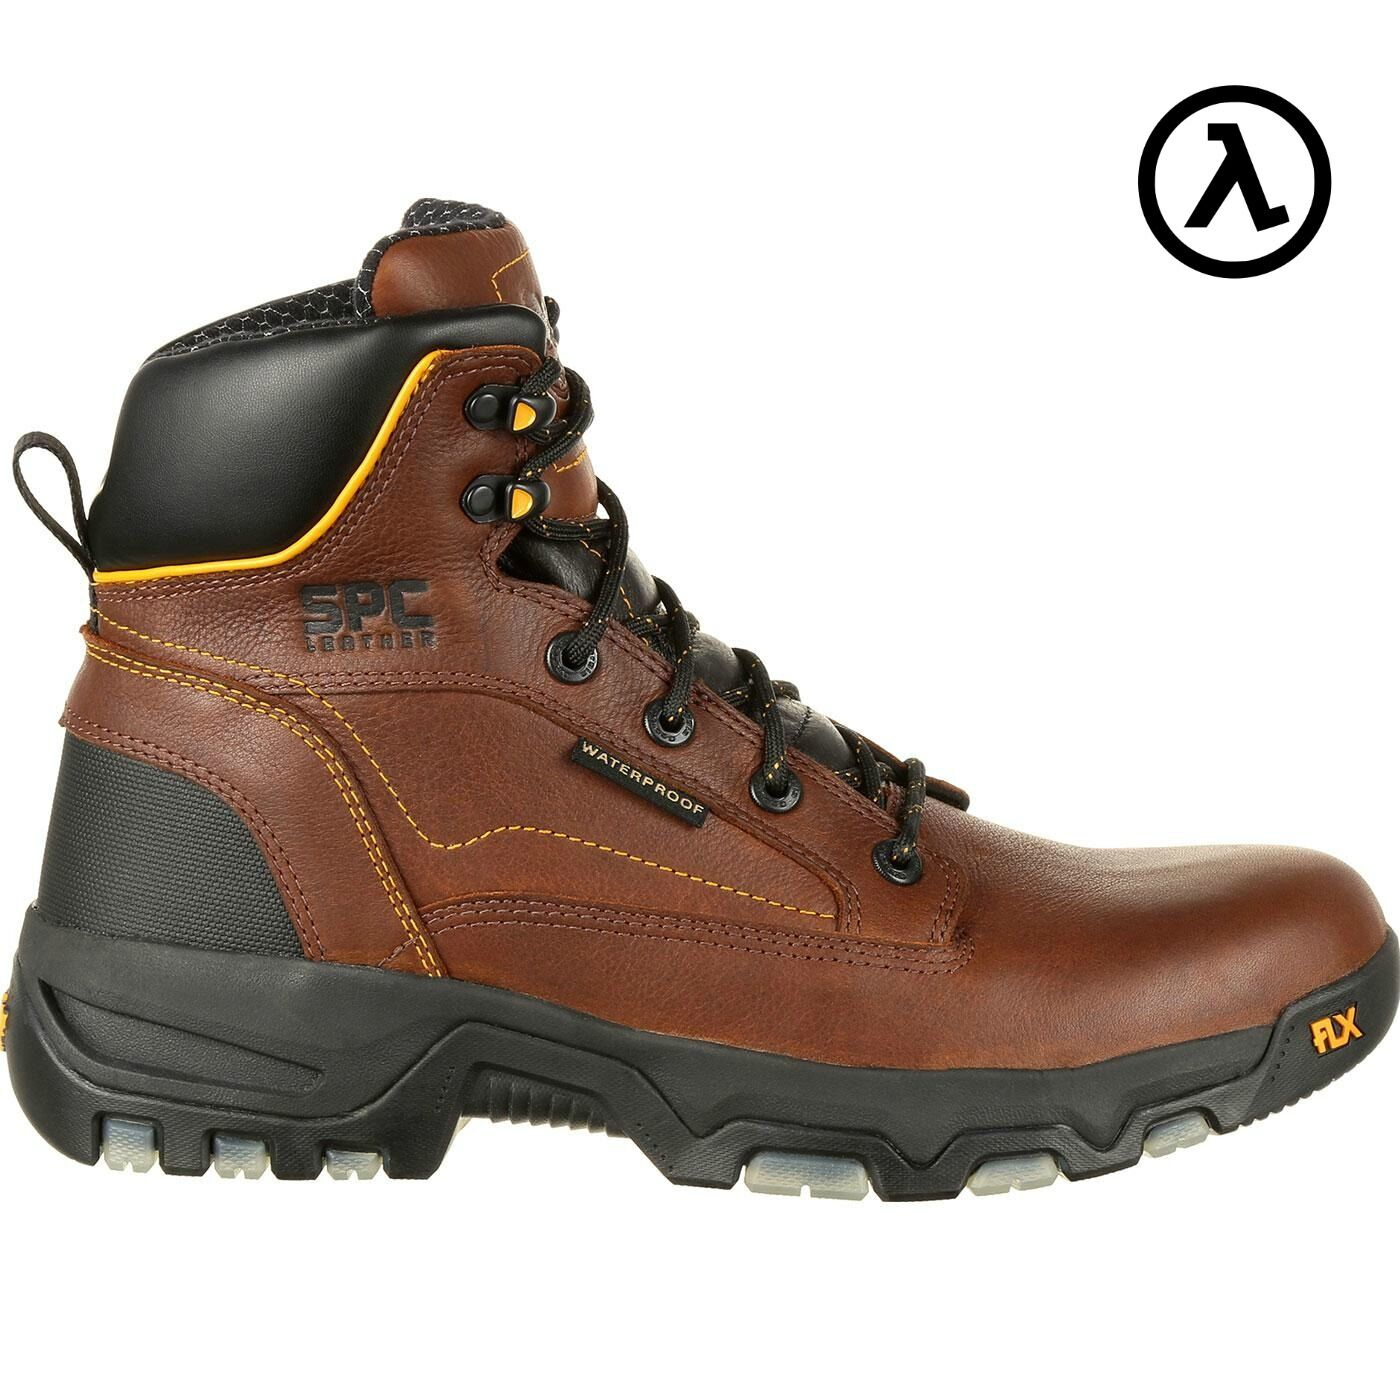 GEORGIA FLXPOINT COMPOSITE TOE WATERPROOF WORK BOOTS GB00168  ALL SIZES - NEW